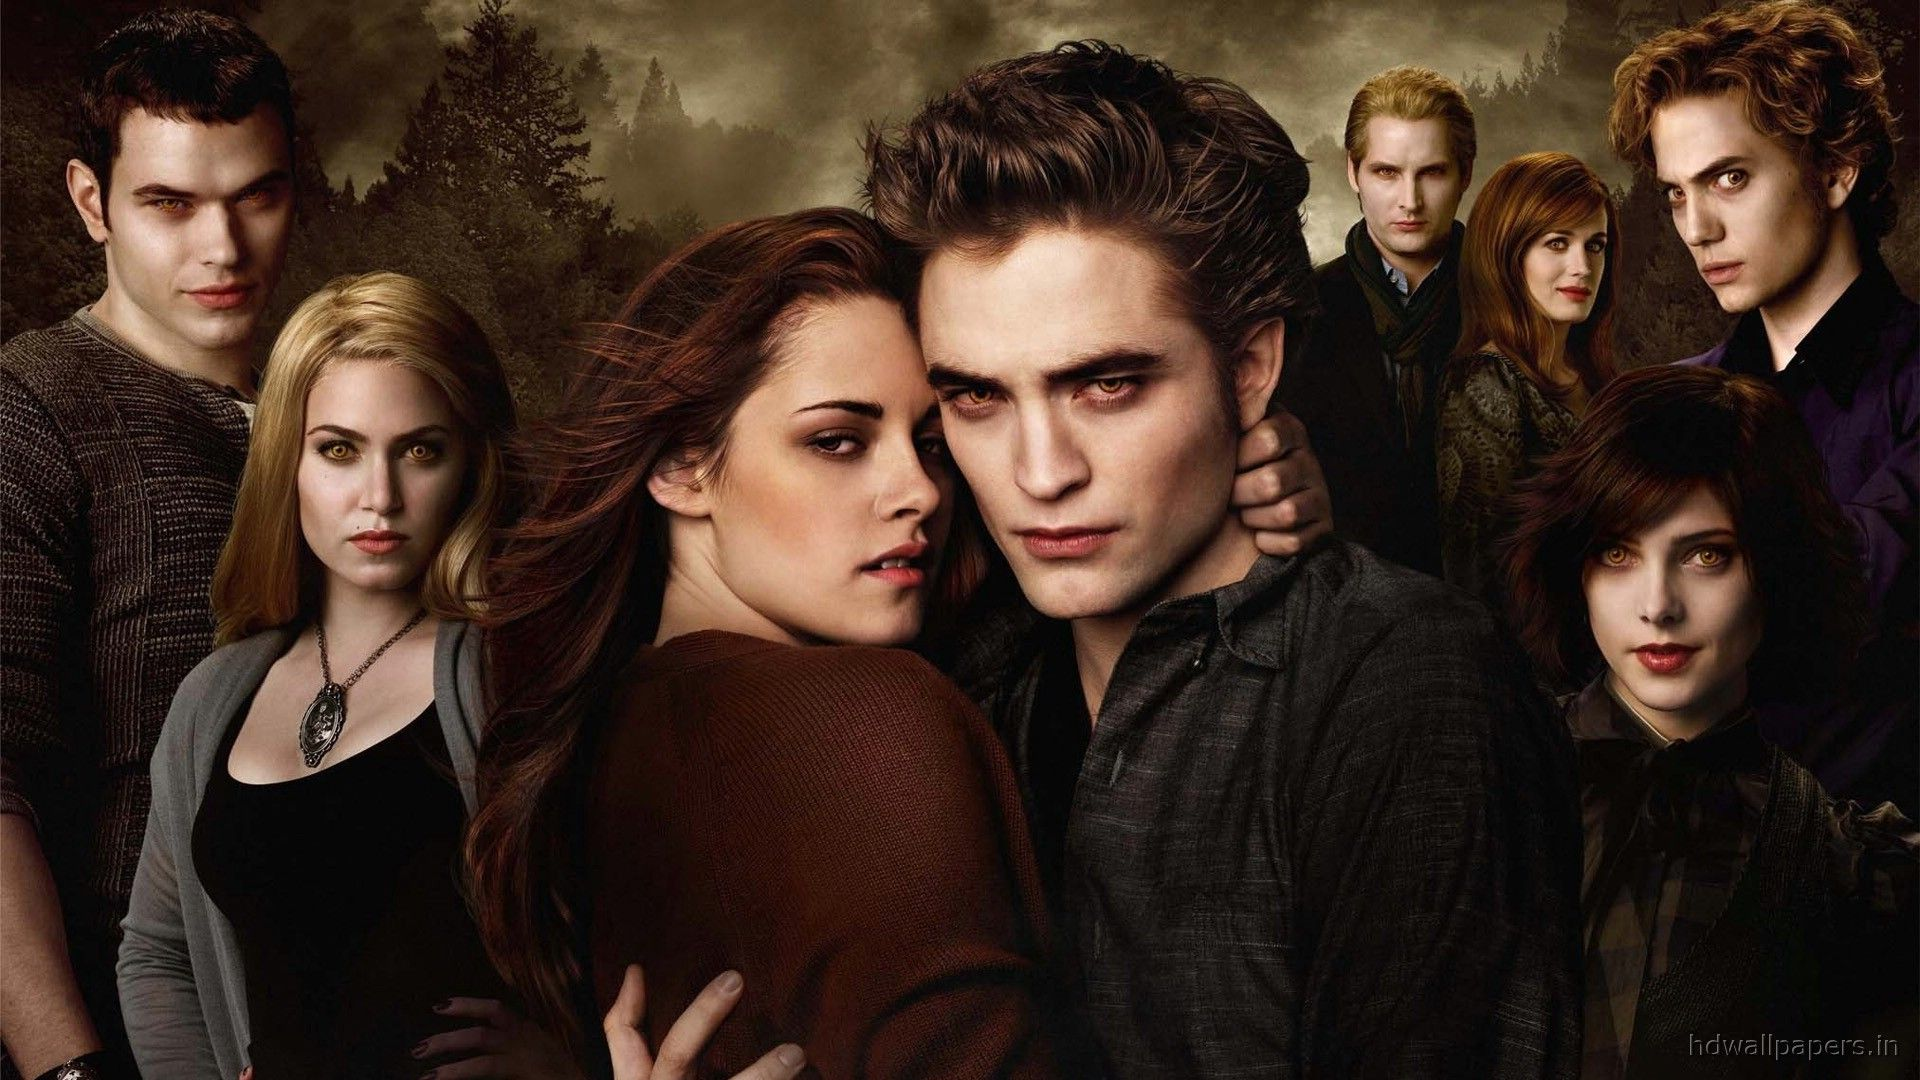 Top 11 Otherworldly Romantic Movies Like Twilight You Must Watch